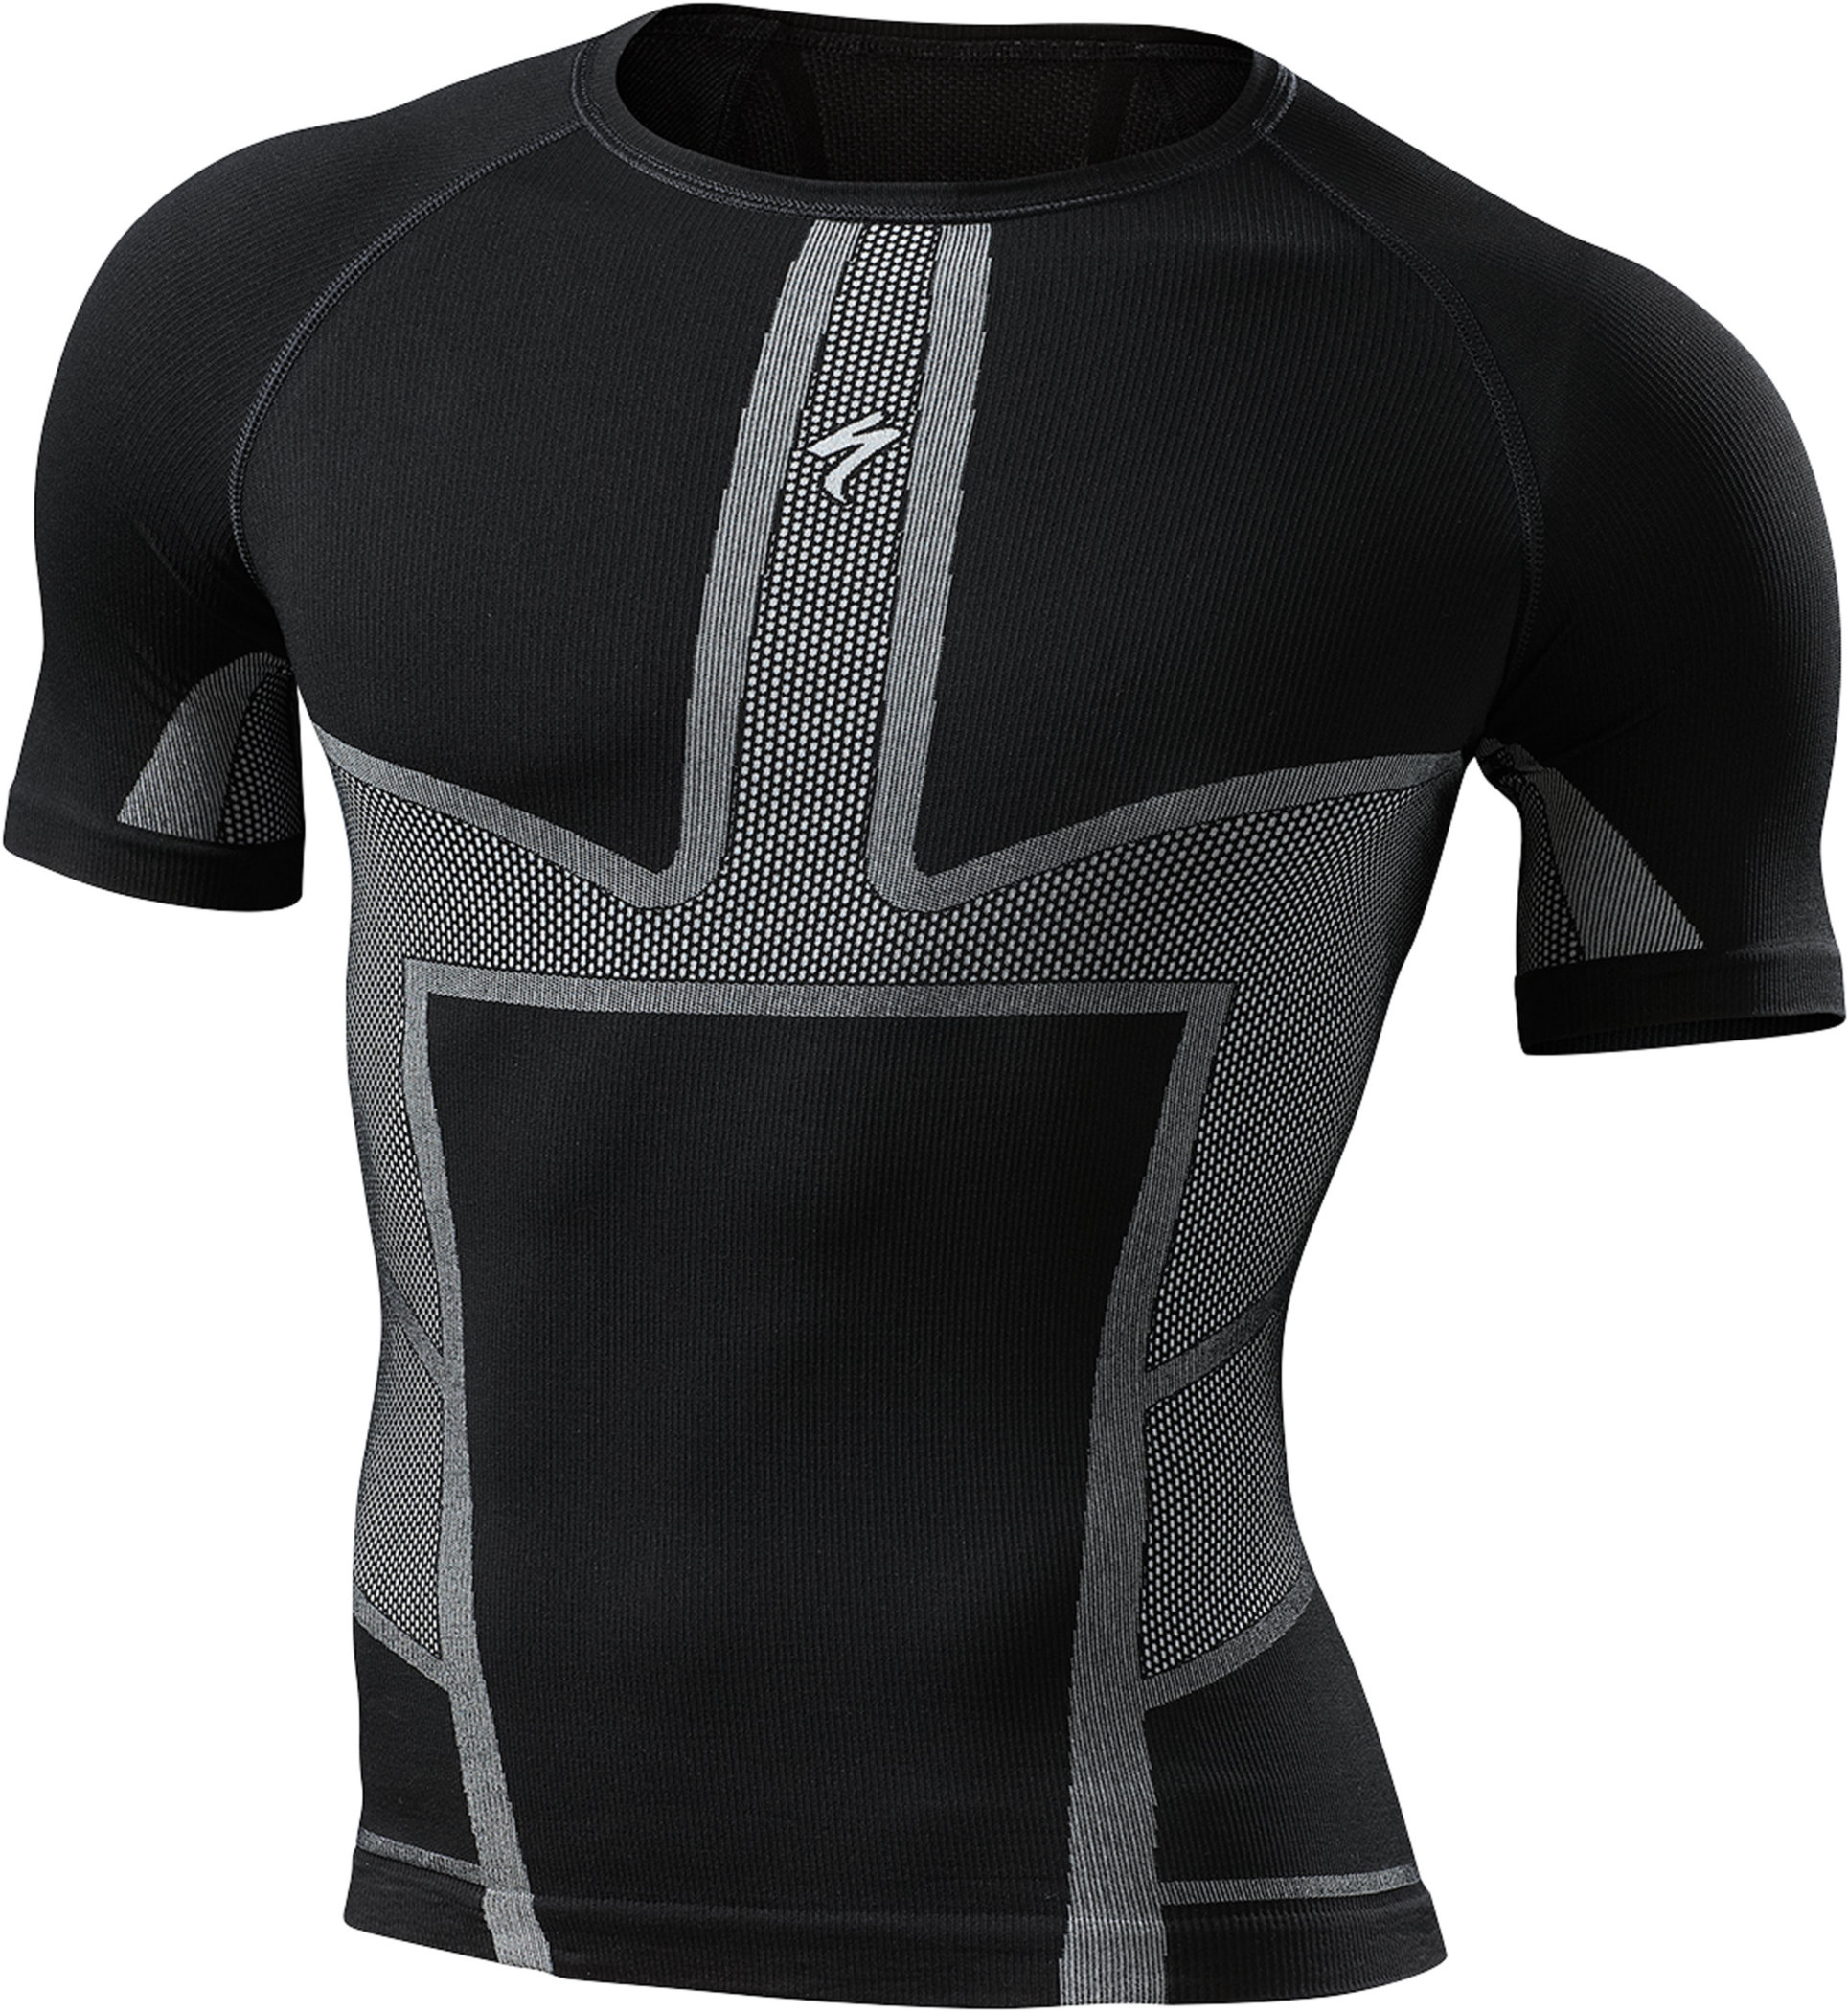 Specialized Engineered Short Sleeve Tech Layer Black Small - Alpha Bikes